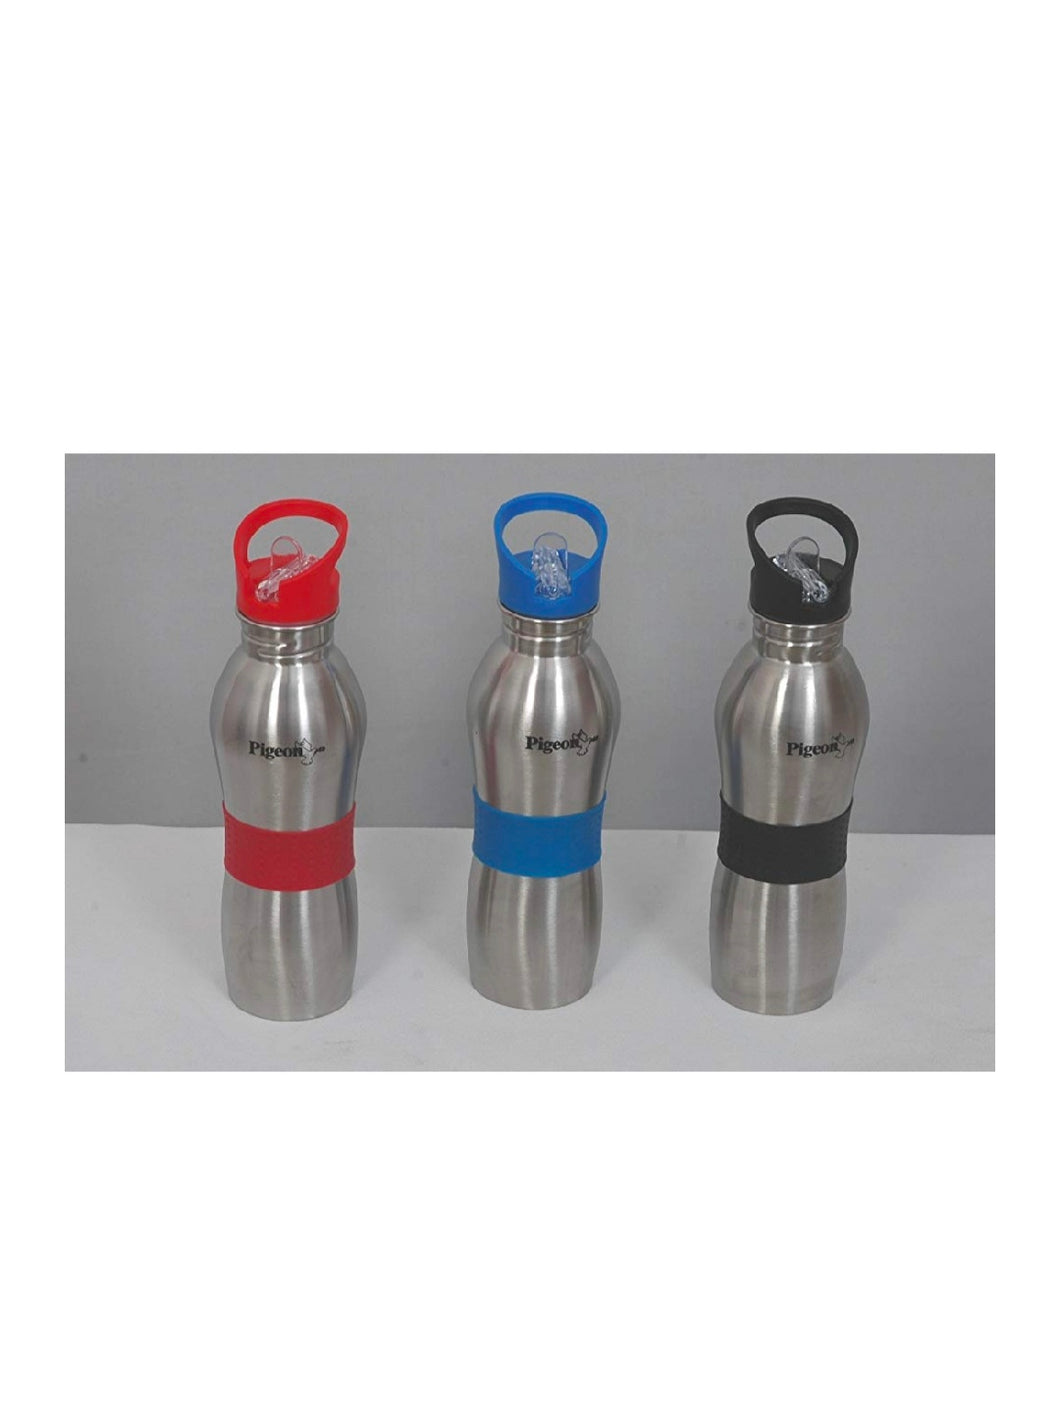 Pigeon Playboy Sport Water Bottle, 750ml (Pack of 3 Red, Black & Blue) - thegsnd